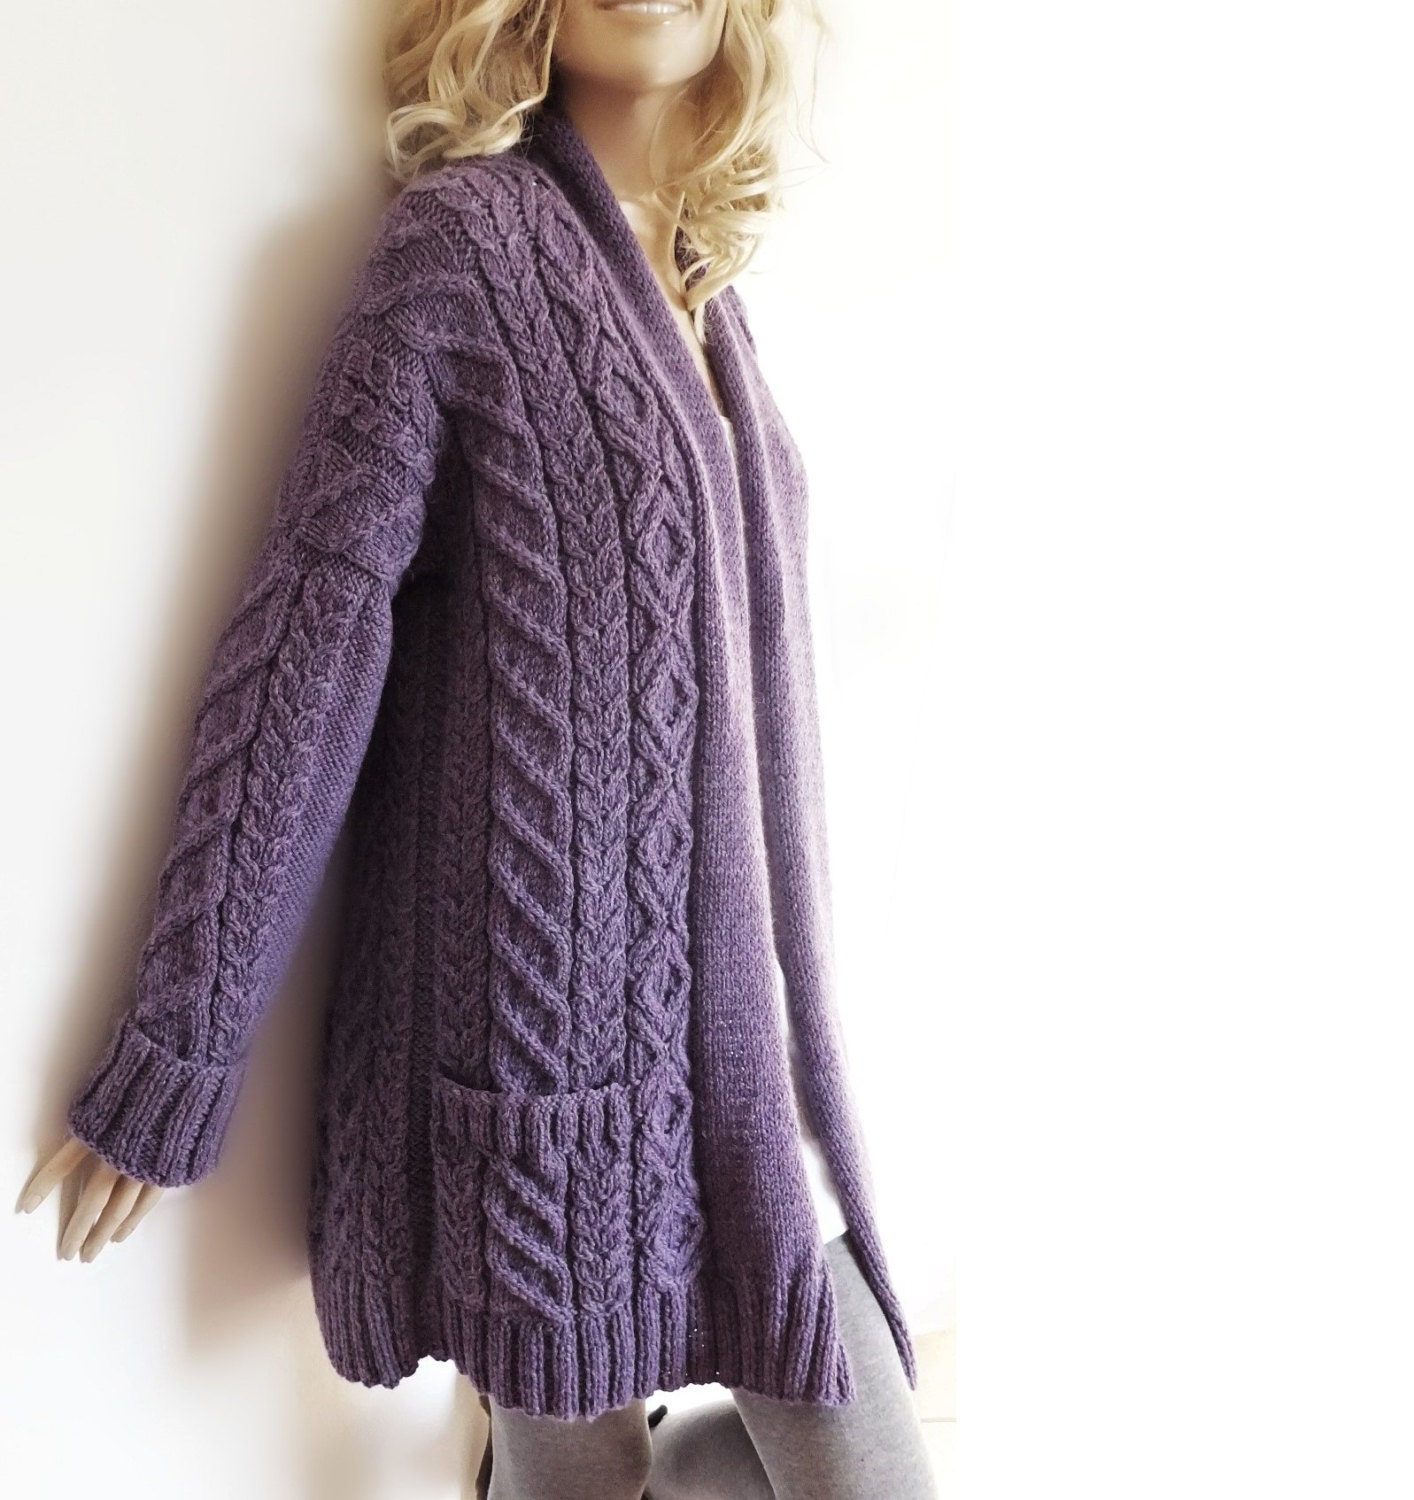 Women's Cable Knit Sweater Knitted Alpaca and Wool